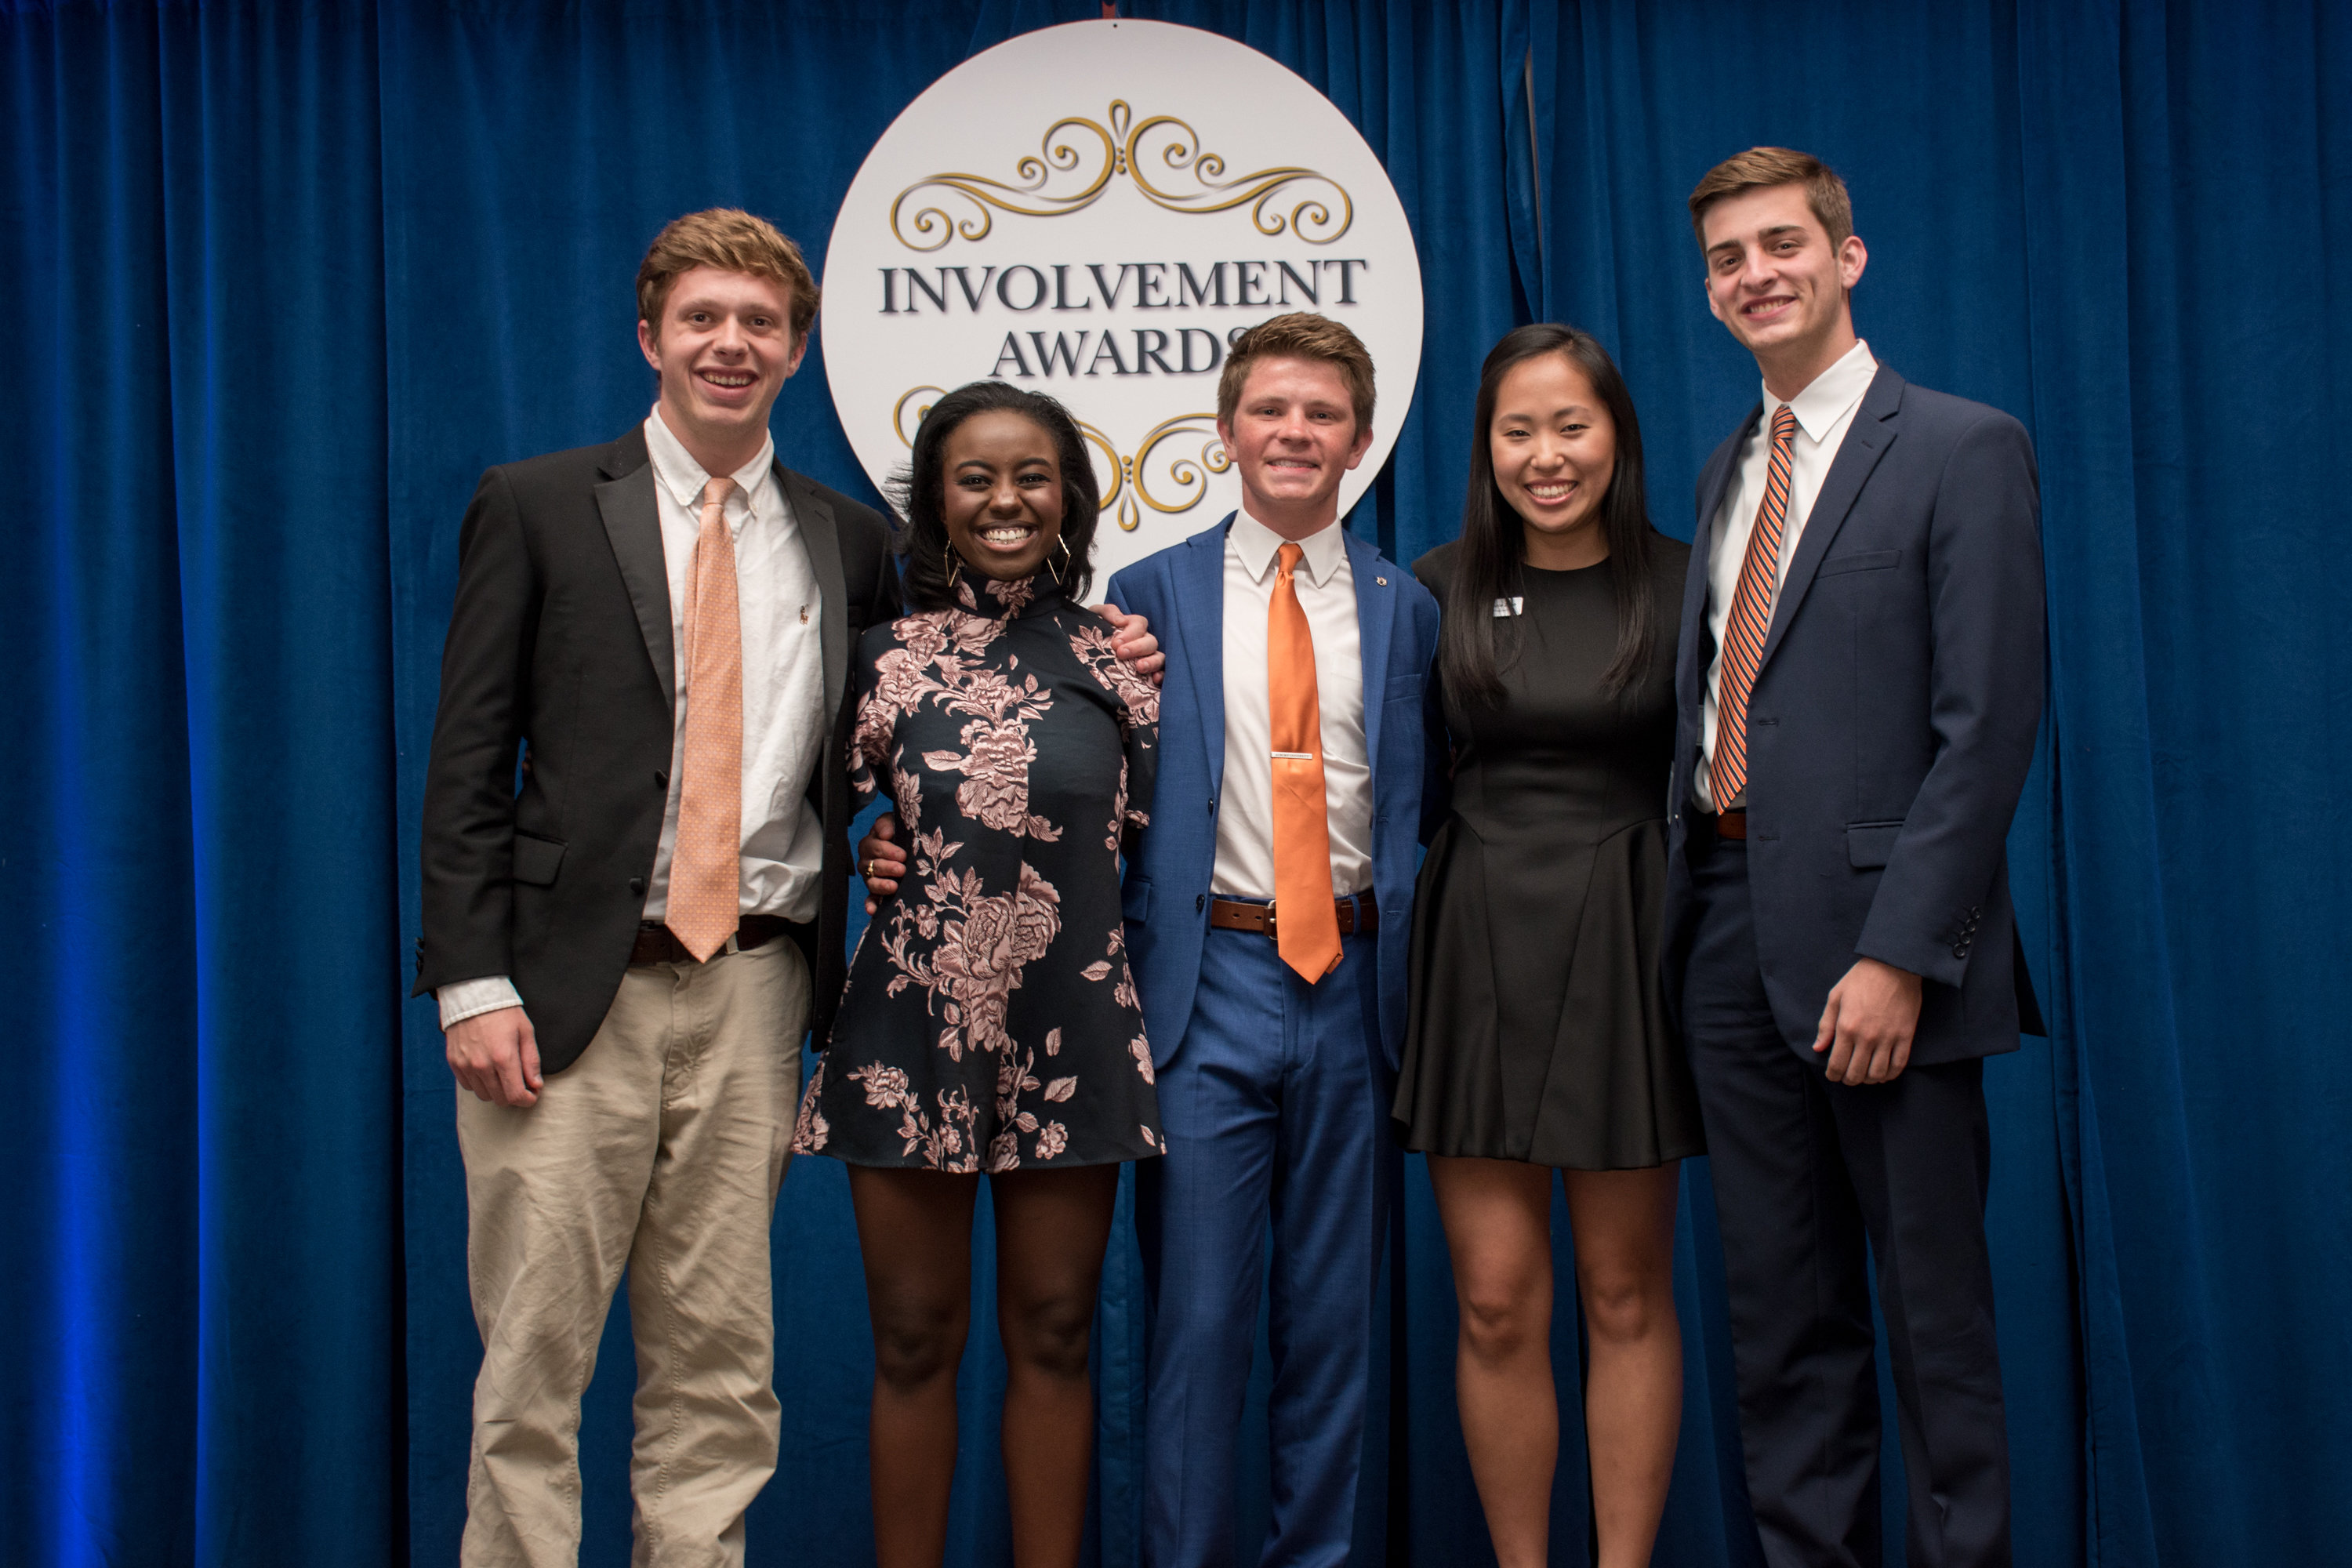 Student Involvement Awards 2018 highlights doing the best with what you have